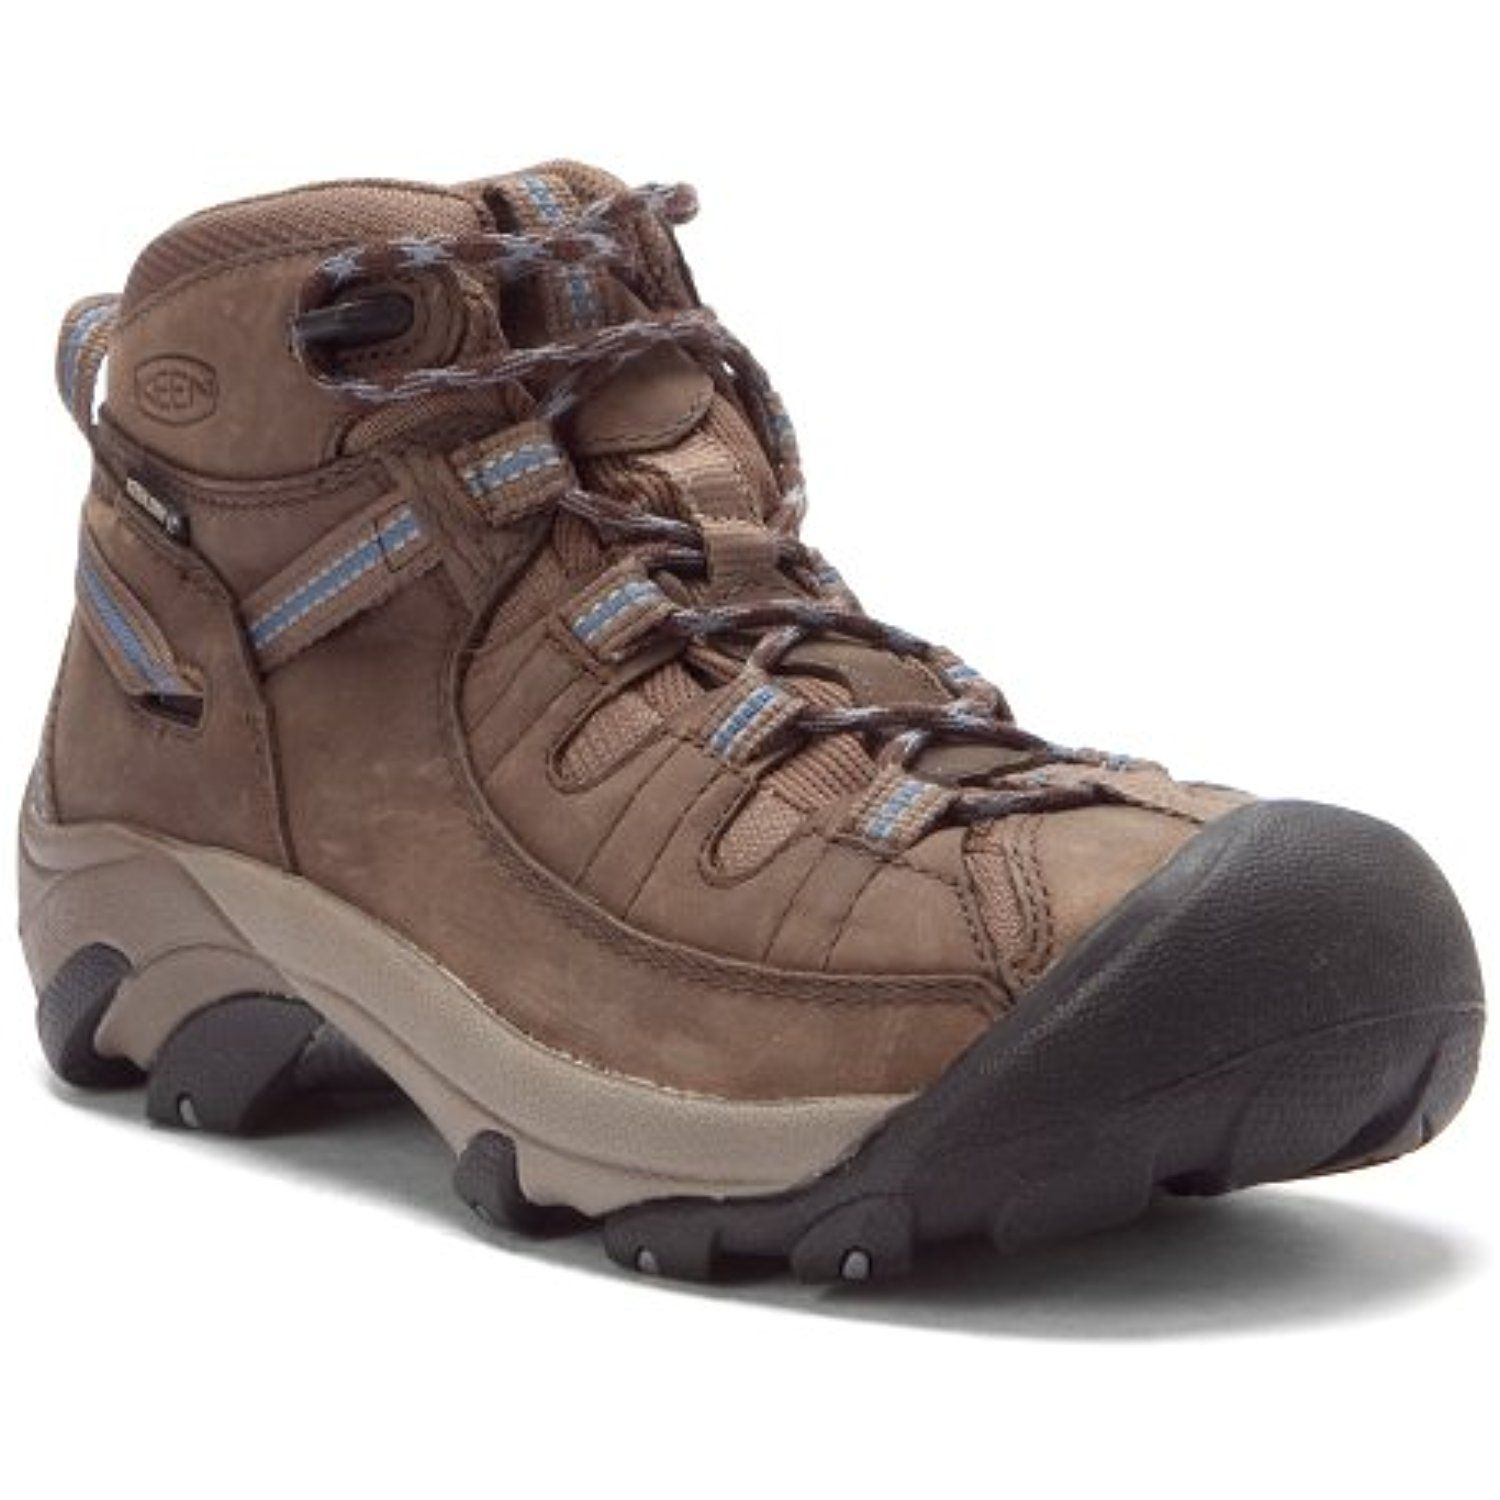 1004114 KEEN Women's Targhee II Mid Hiking Boots - Brown - 9.5\M * Want